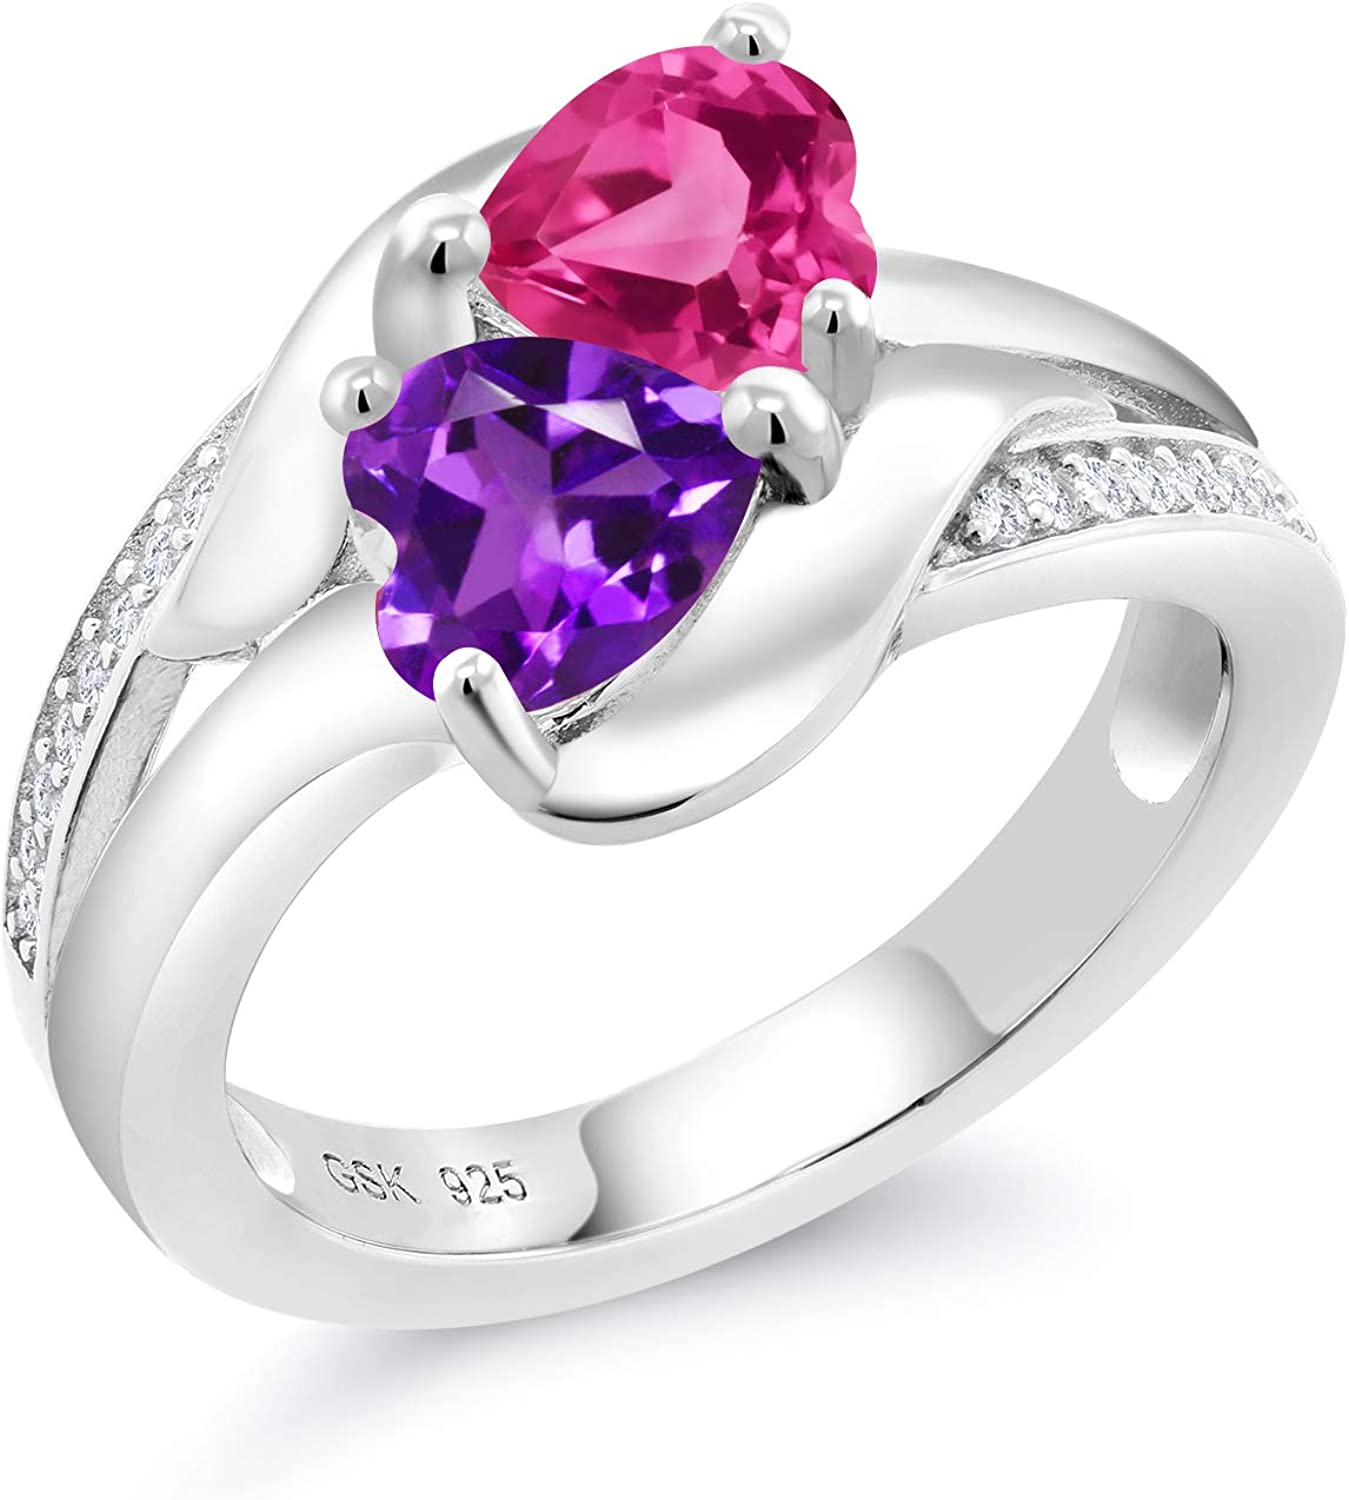 Gem Stone King 925 Sterling Silver Engagement Ring Promise Ring Customized & Personalized 2 Birthstone Heart Shape Build Your Own For Her Heart Ring